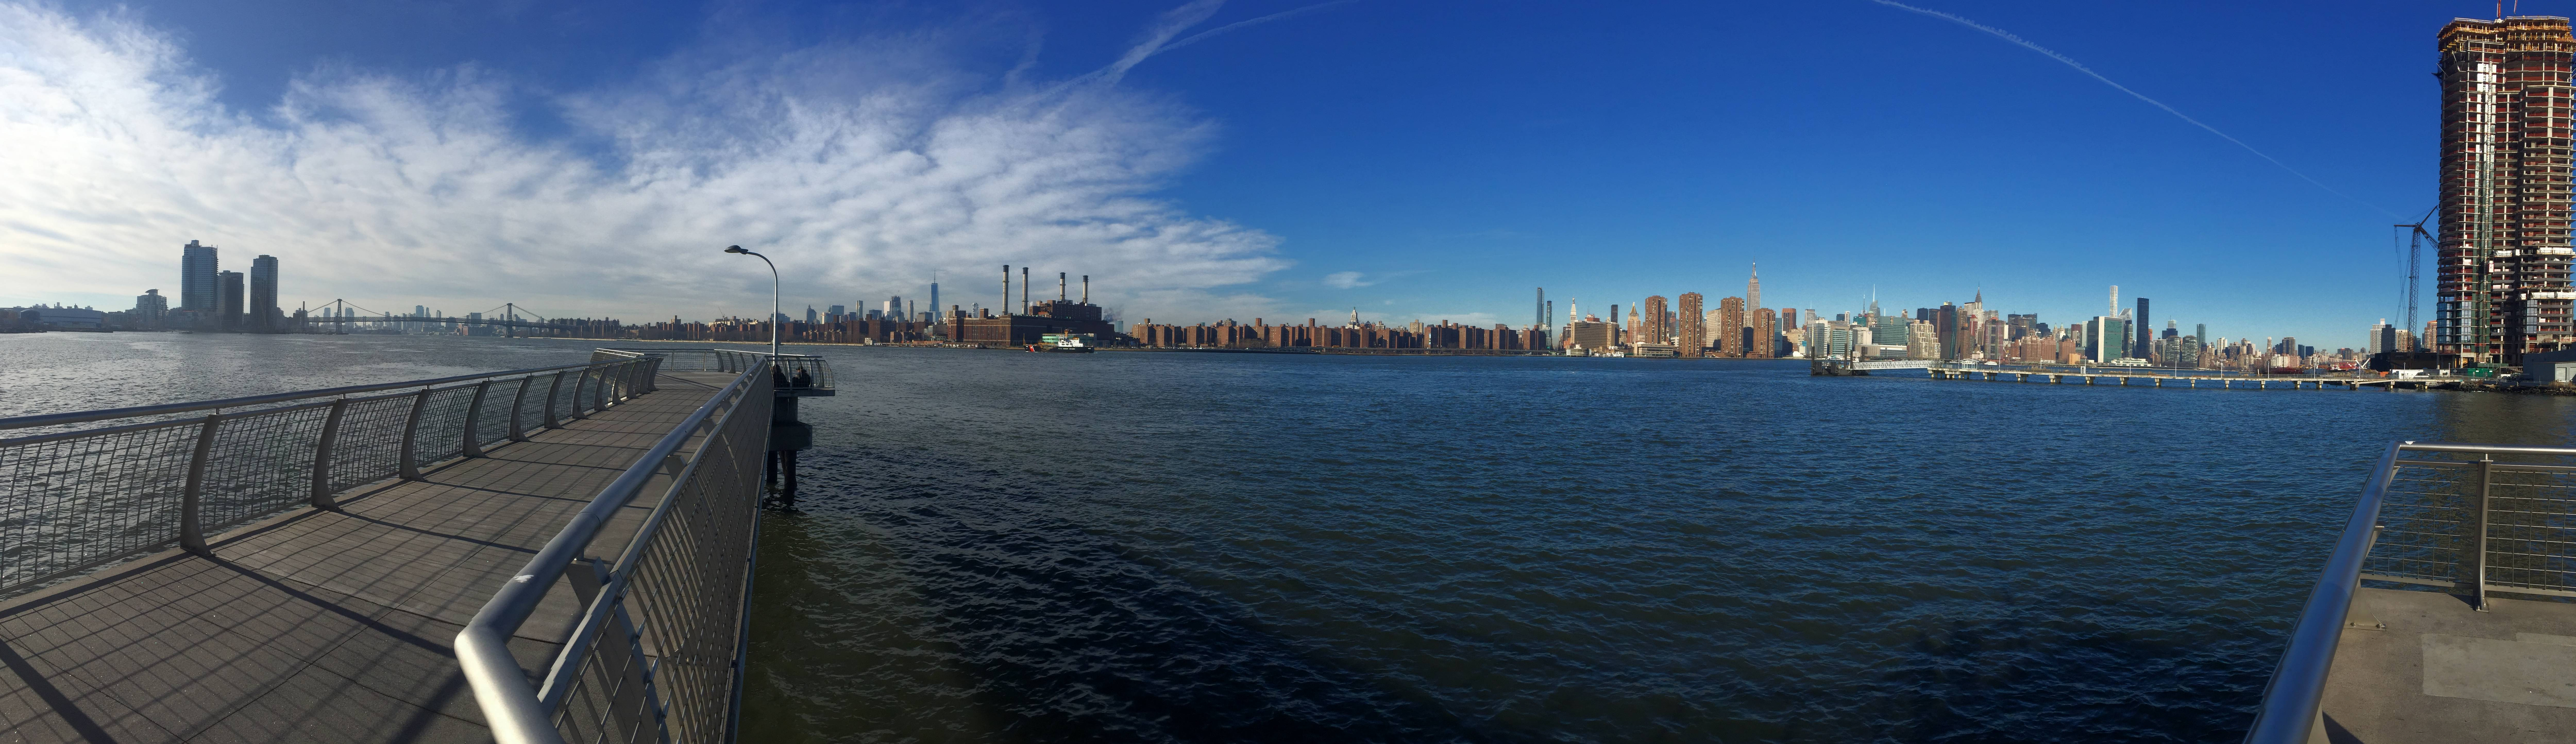 Photo 2: Ferry NYC, comme un New Yorker !